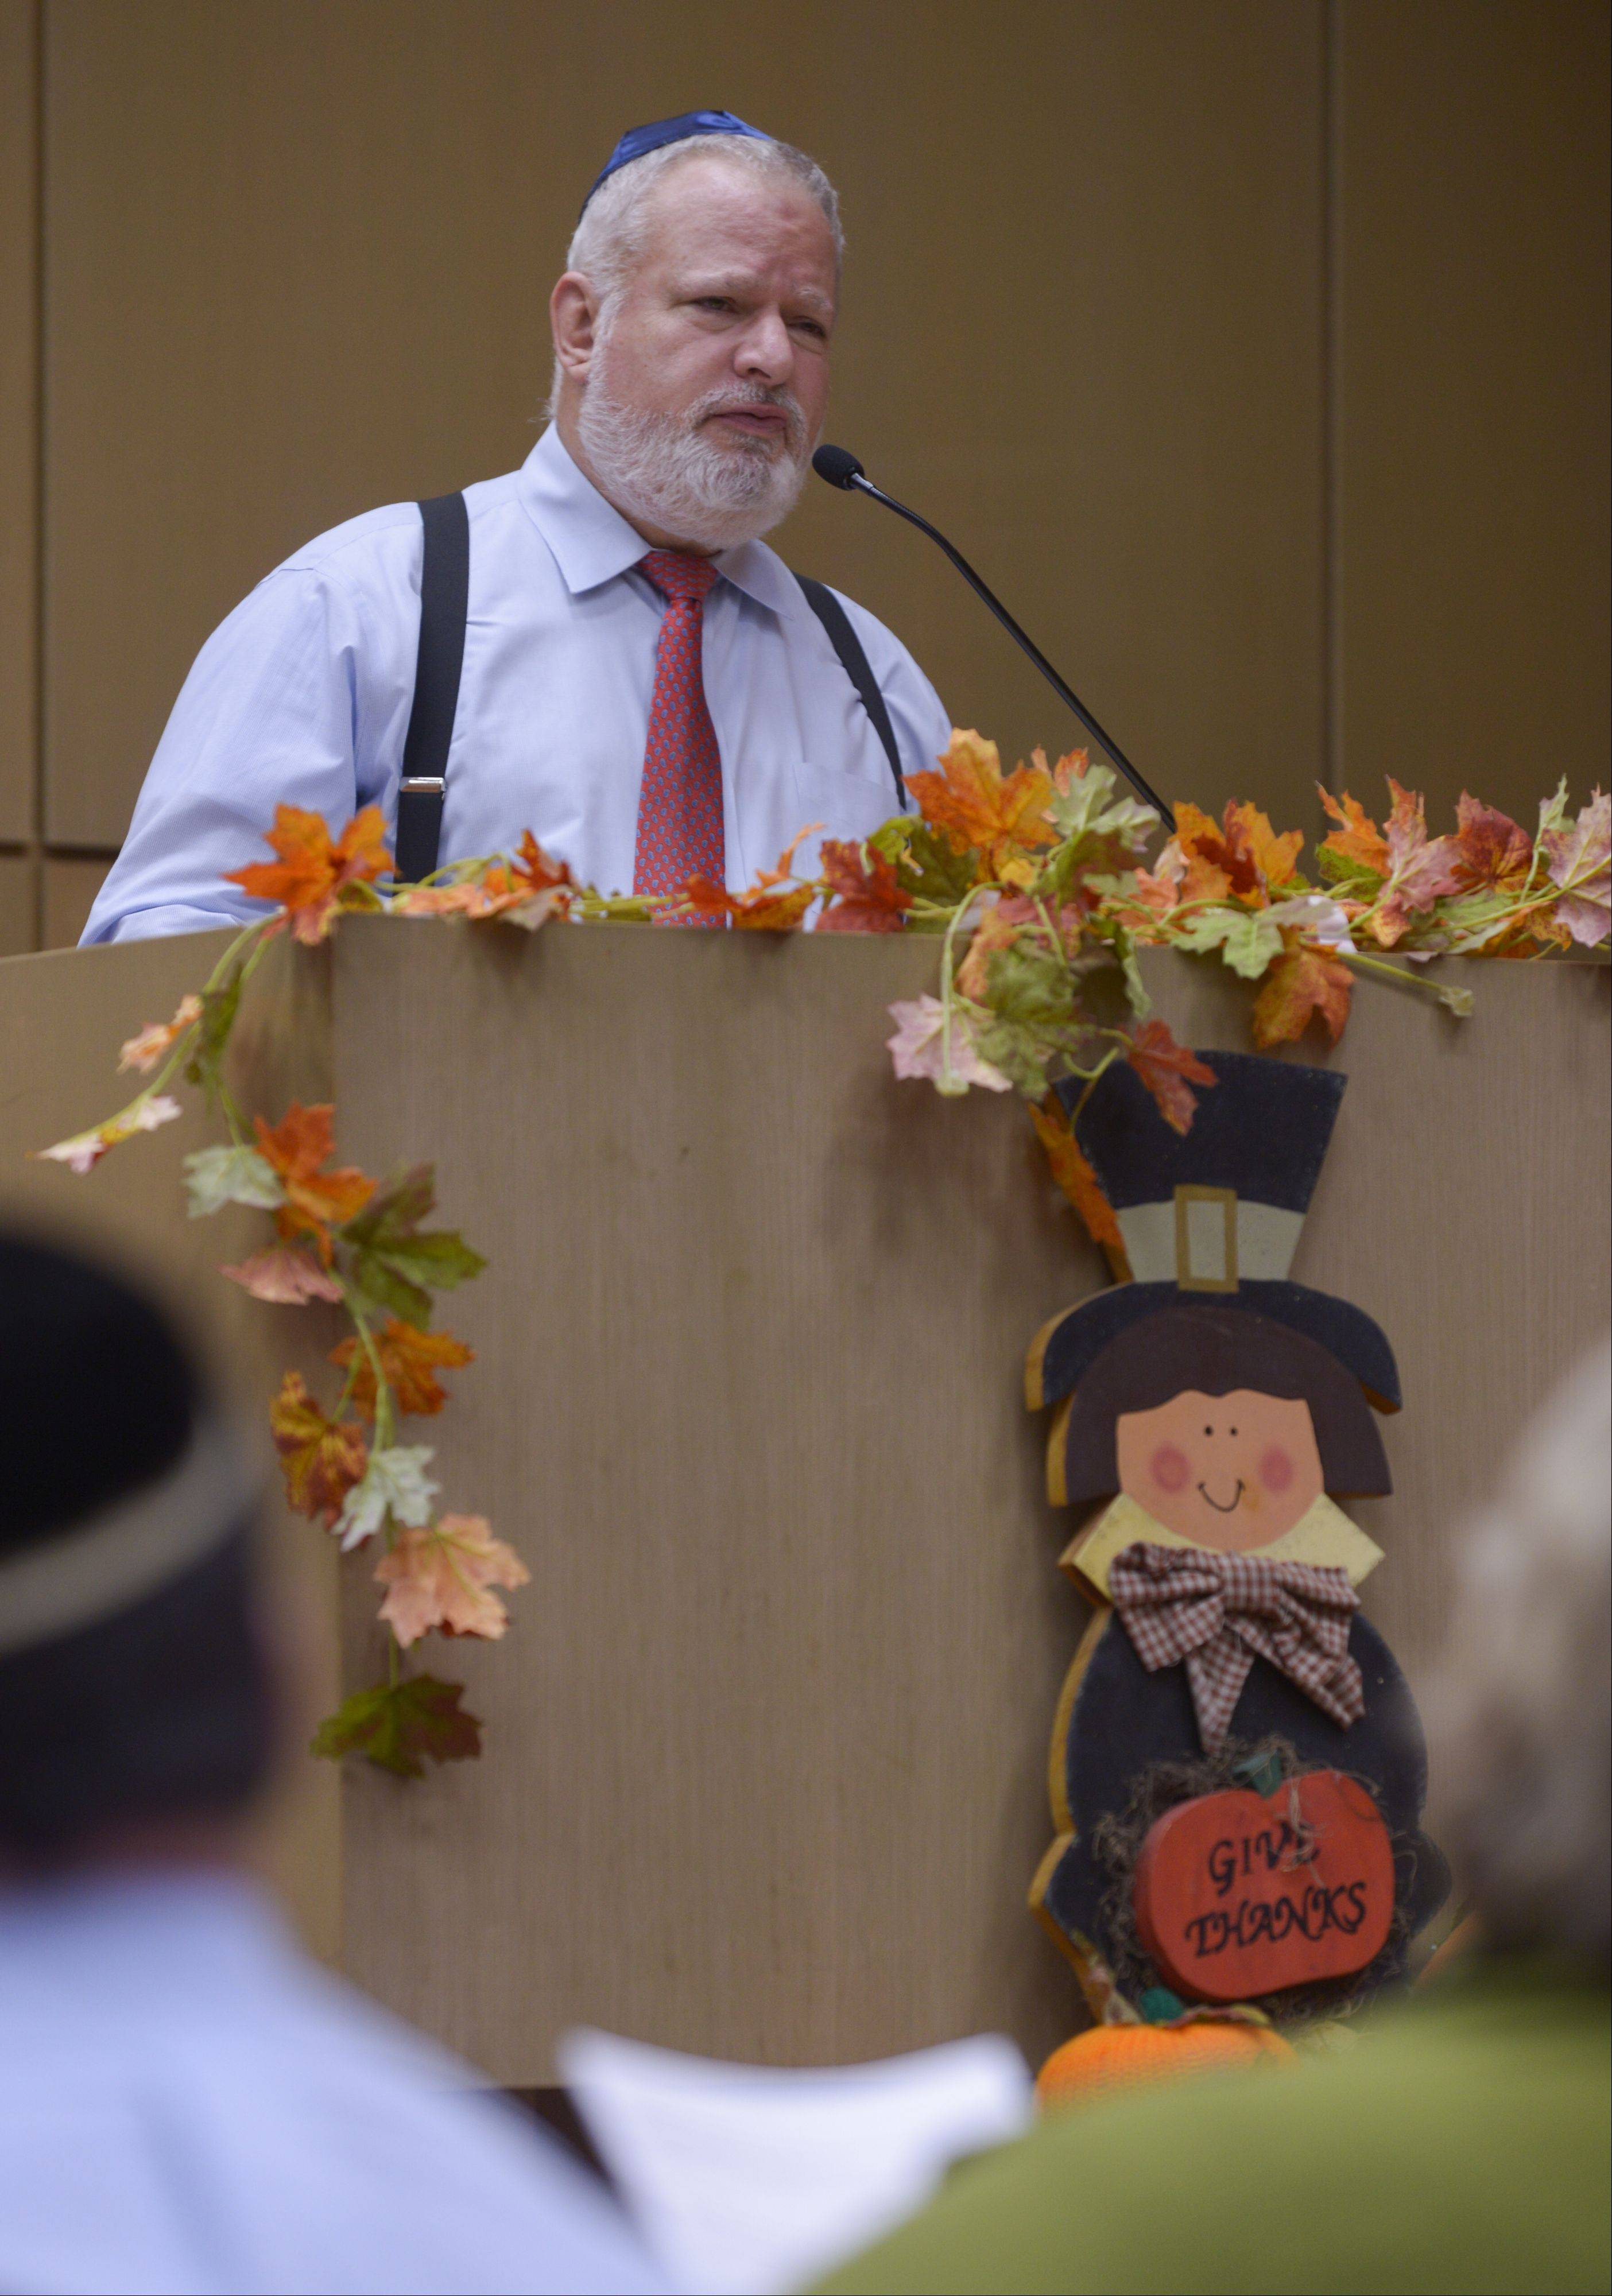 Gary Raymond of Temple B'nai Israel speaks during the Interfaith Thanksgiving service at Temple B'nai in Aurora. The annual event brings together worshippers from many faiths to give thanks.